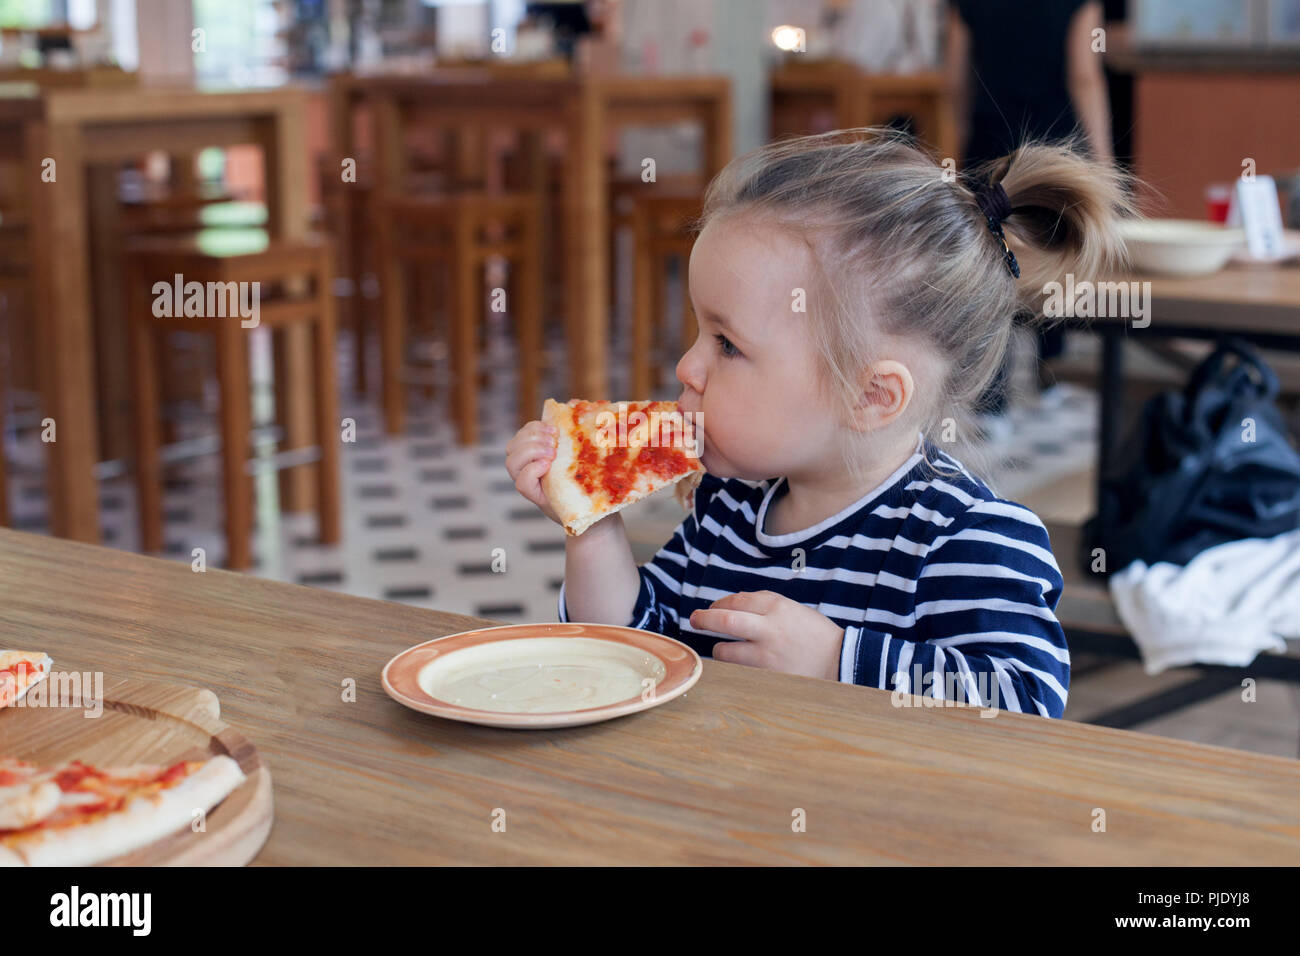 Cute little 2 years girl eating pizza in the restaurant Stock Photo